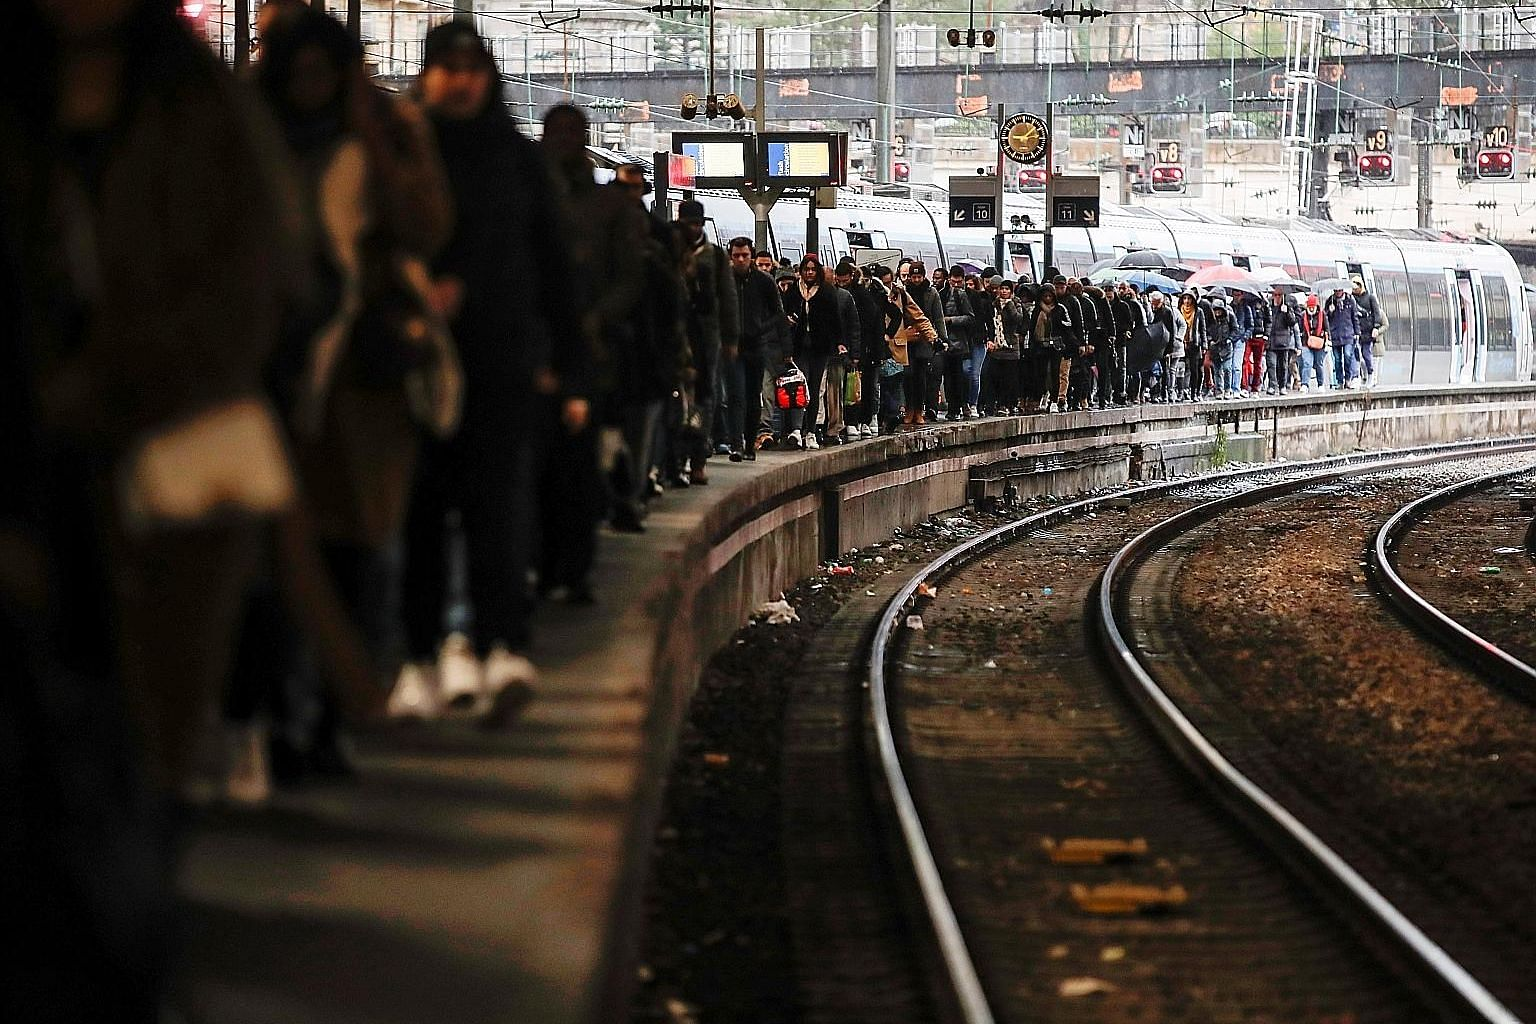 Commuters walking on a platform at Gare Saint-Lazare train station yesterday as a strike continues against the French government's pension reform plans in Paris. Citing safety risks, the SNCF national rail network warned travellers to stay home. PHOT